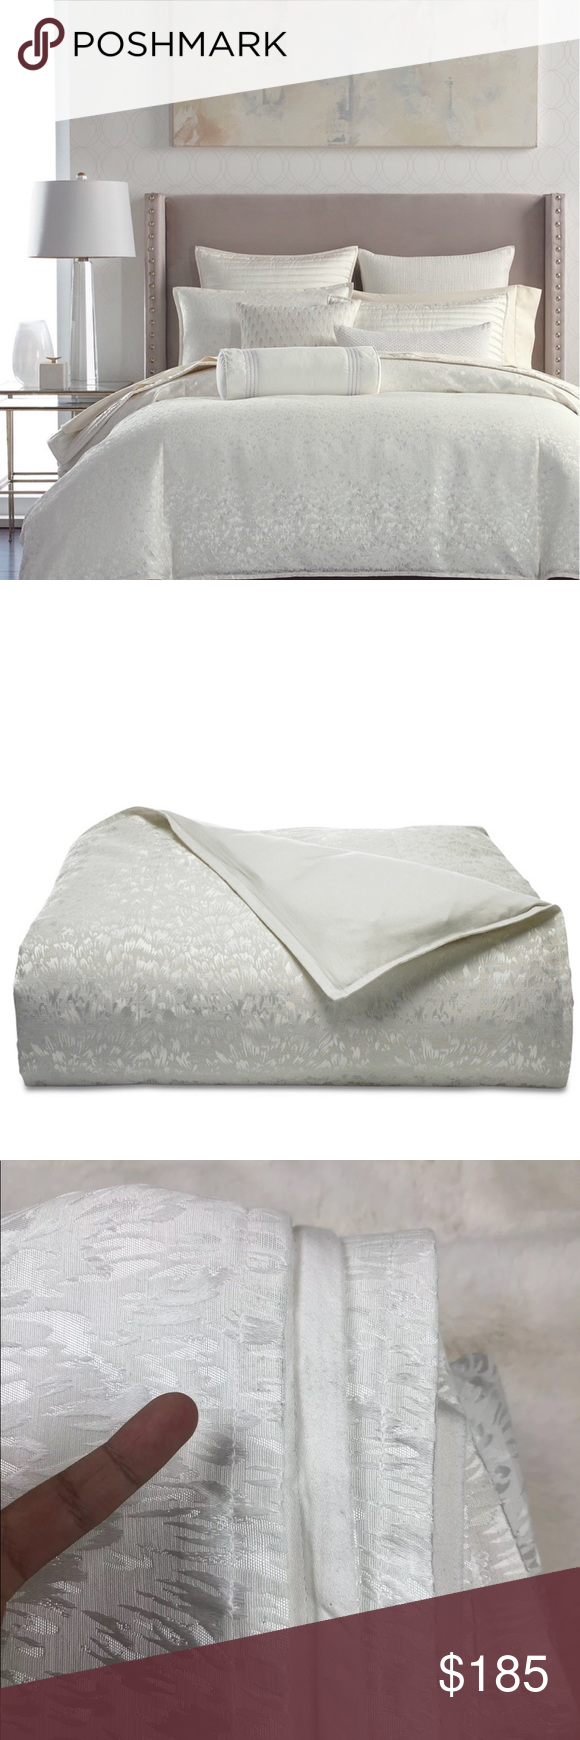 Hotel Collection Plume King Duvet Cover